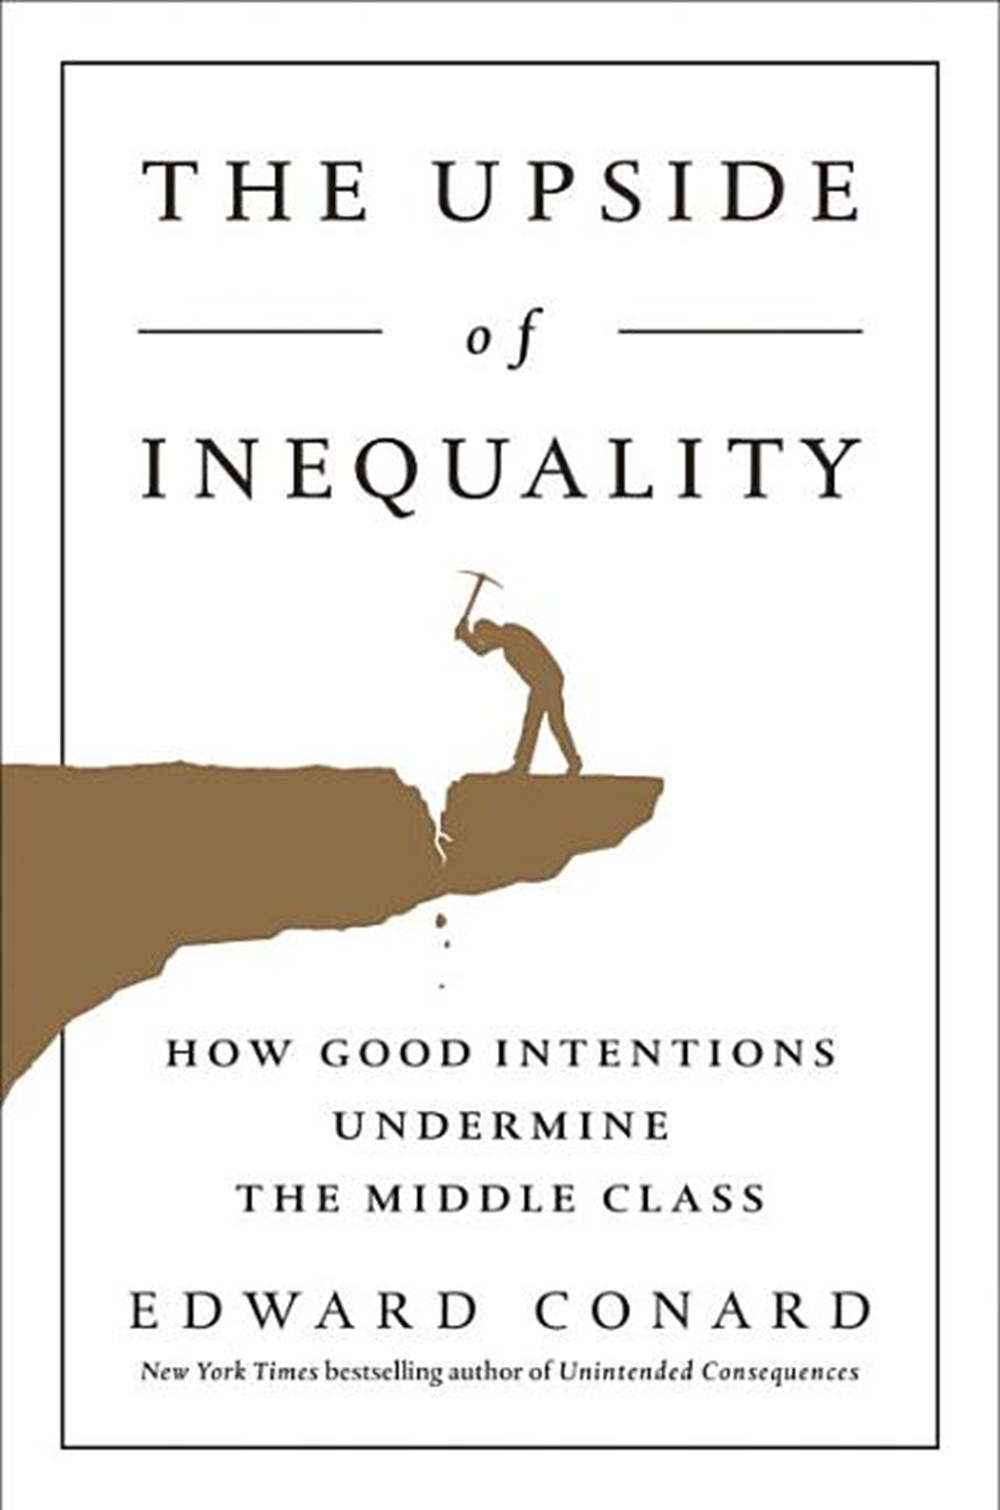 Upside of Inequality: How Good Intentions Undermine the Middle Class